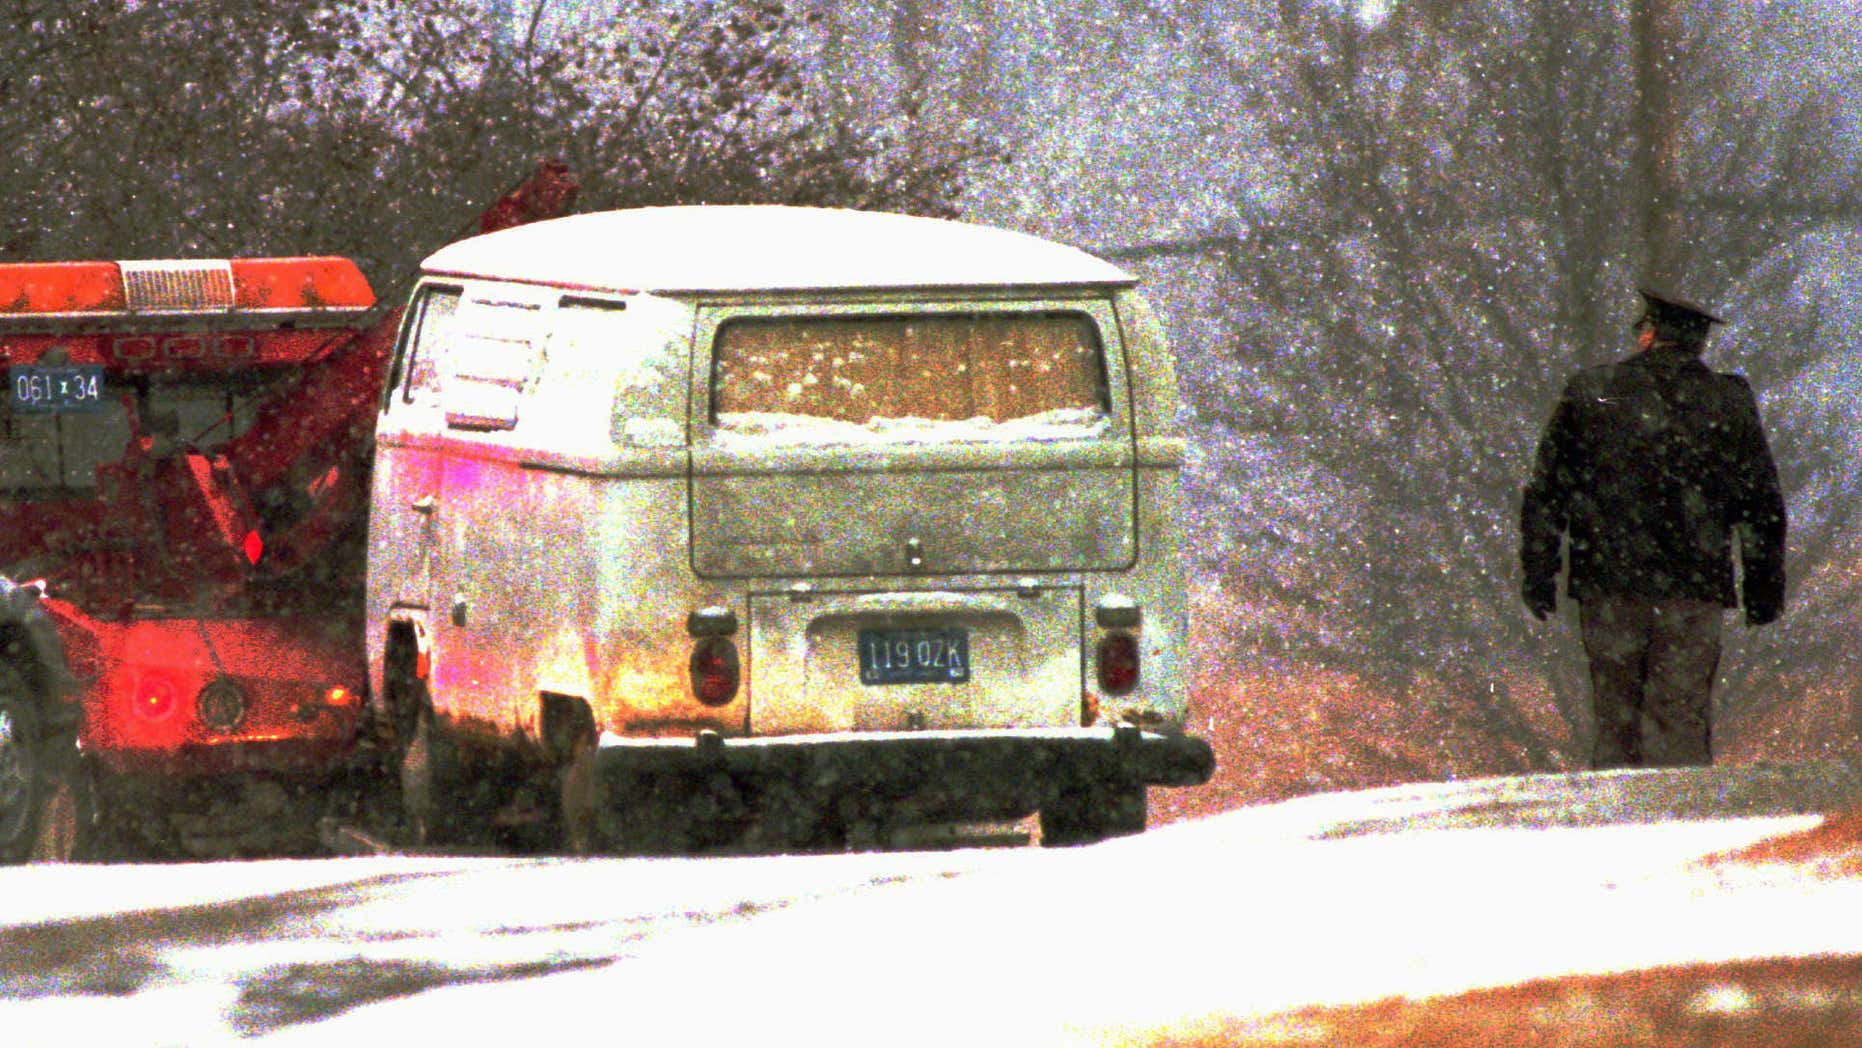 Jan. 29, 1996: A truck pulls Dr. Jack Kevorkian's minivan, which authorities said contained the body of a woman, away from a parking lot at the Medical Examiner's office in Pontiac, Mich.